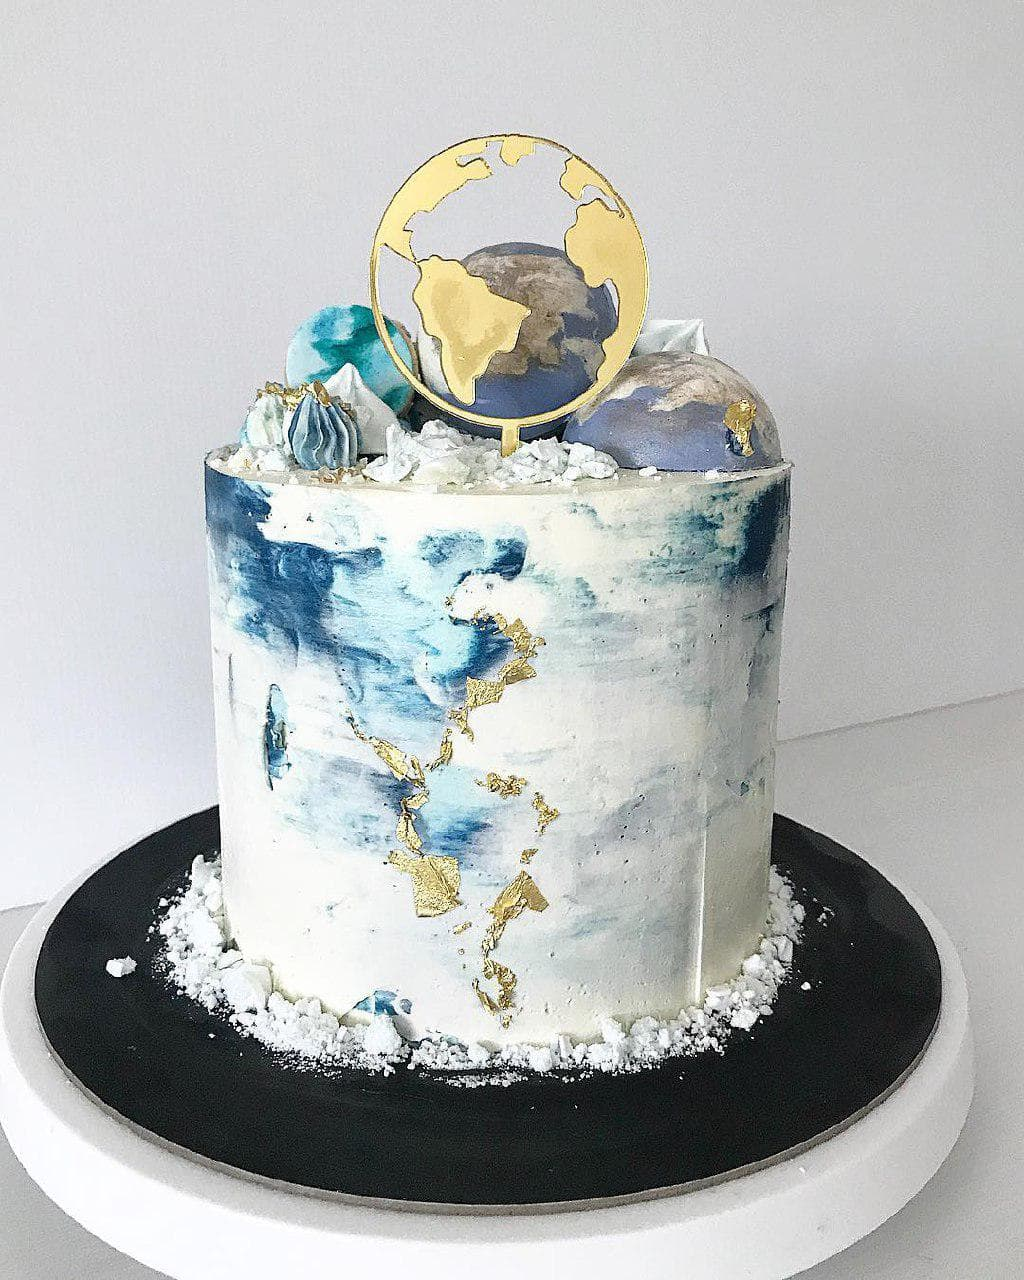 Halal Instagram Bakers - Zizou Cake Boutique